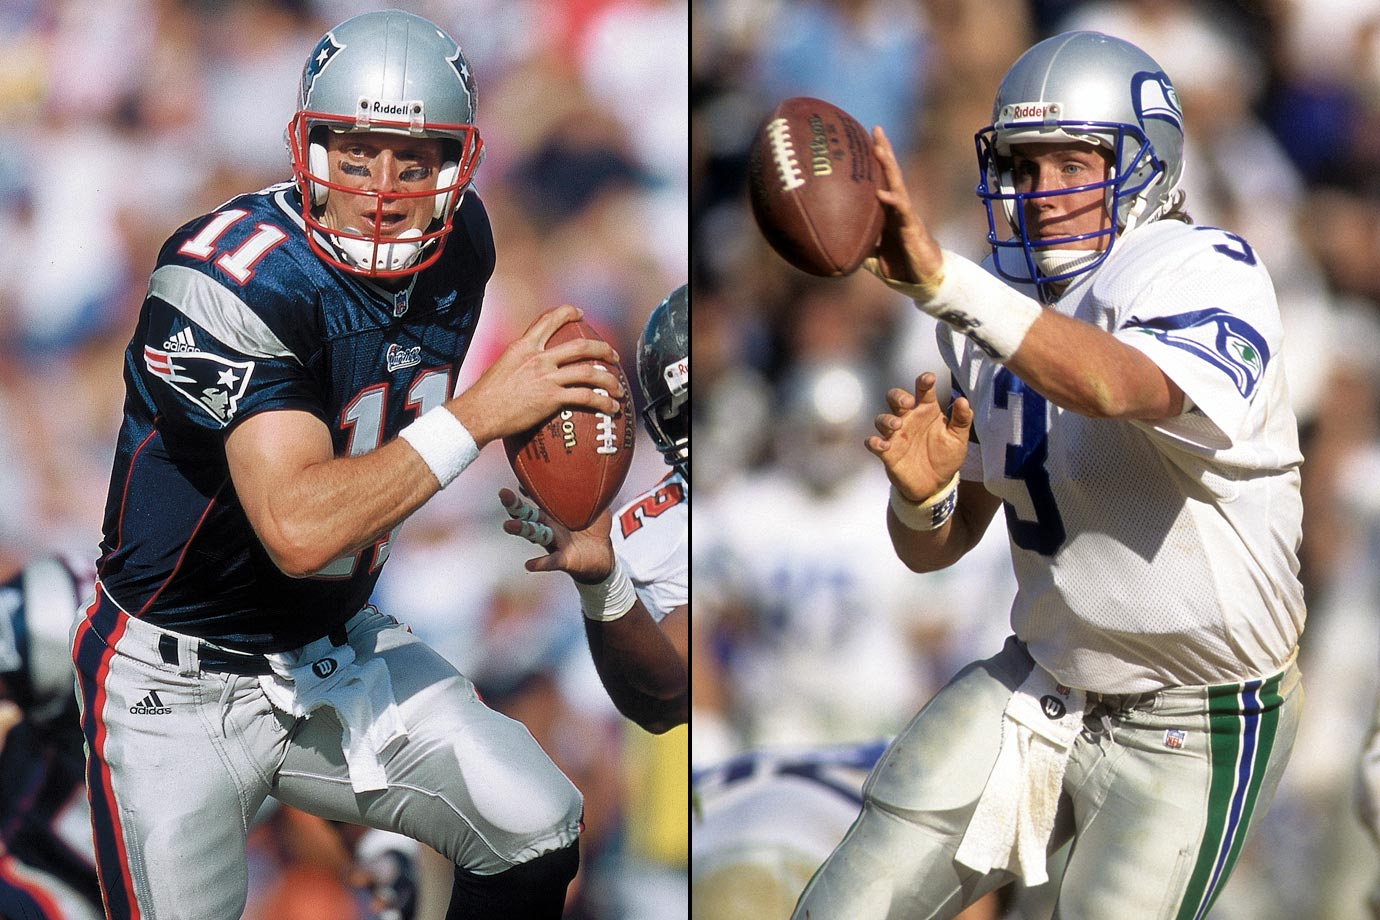 1993: 1—Drew Bledsoe (New England Patriots), 2—Rick Mirer (Seattle Seahawks)